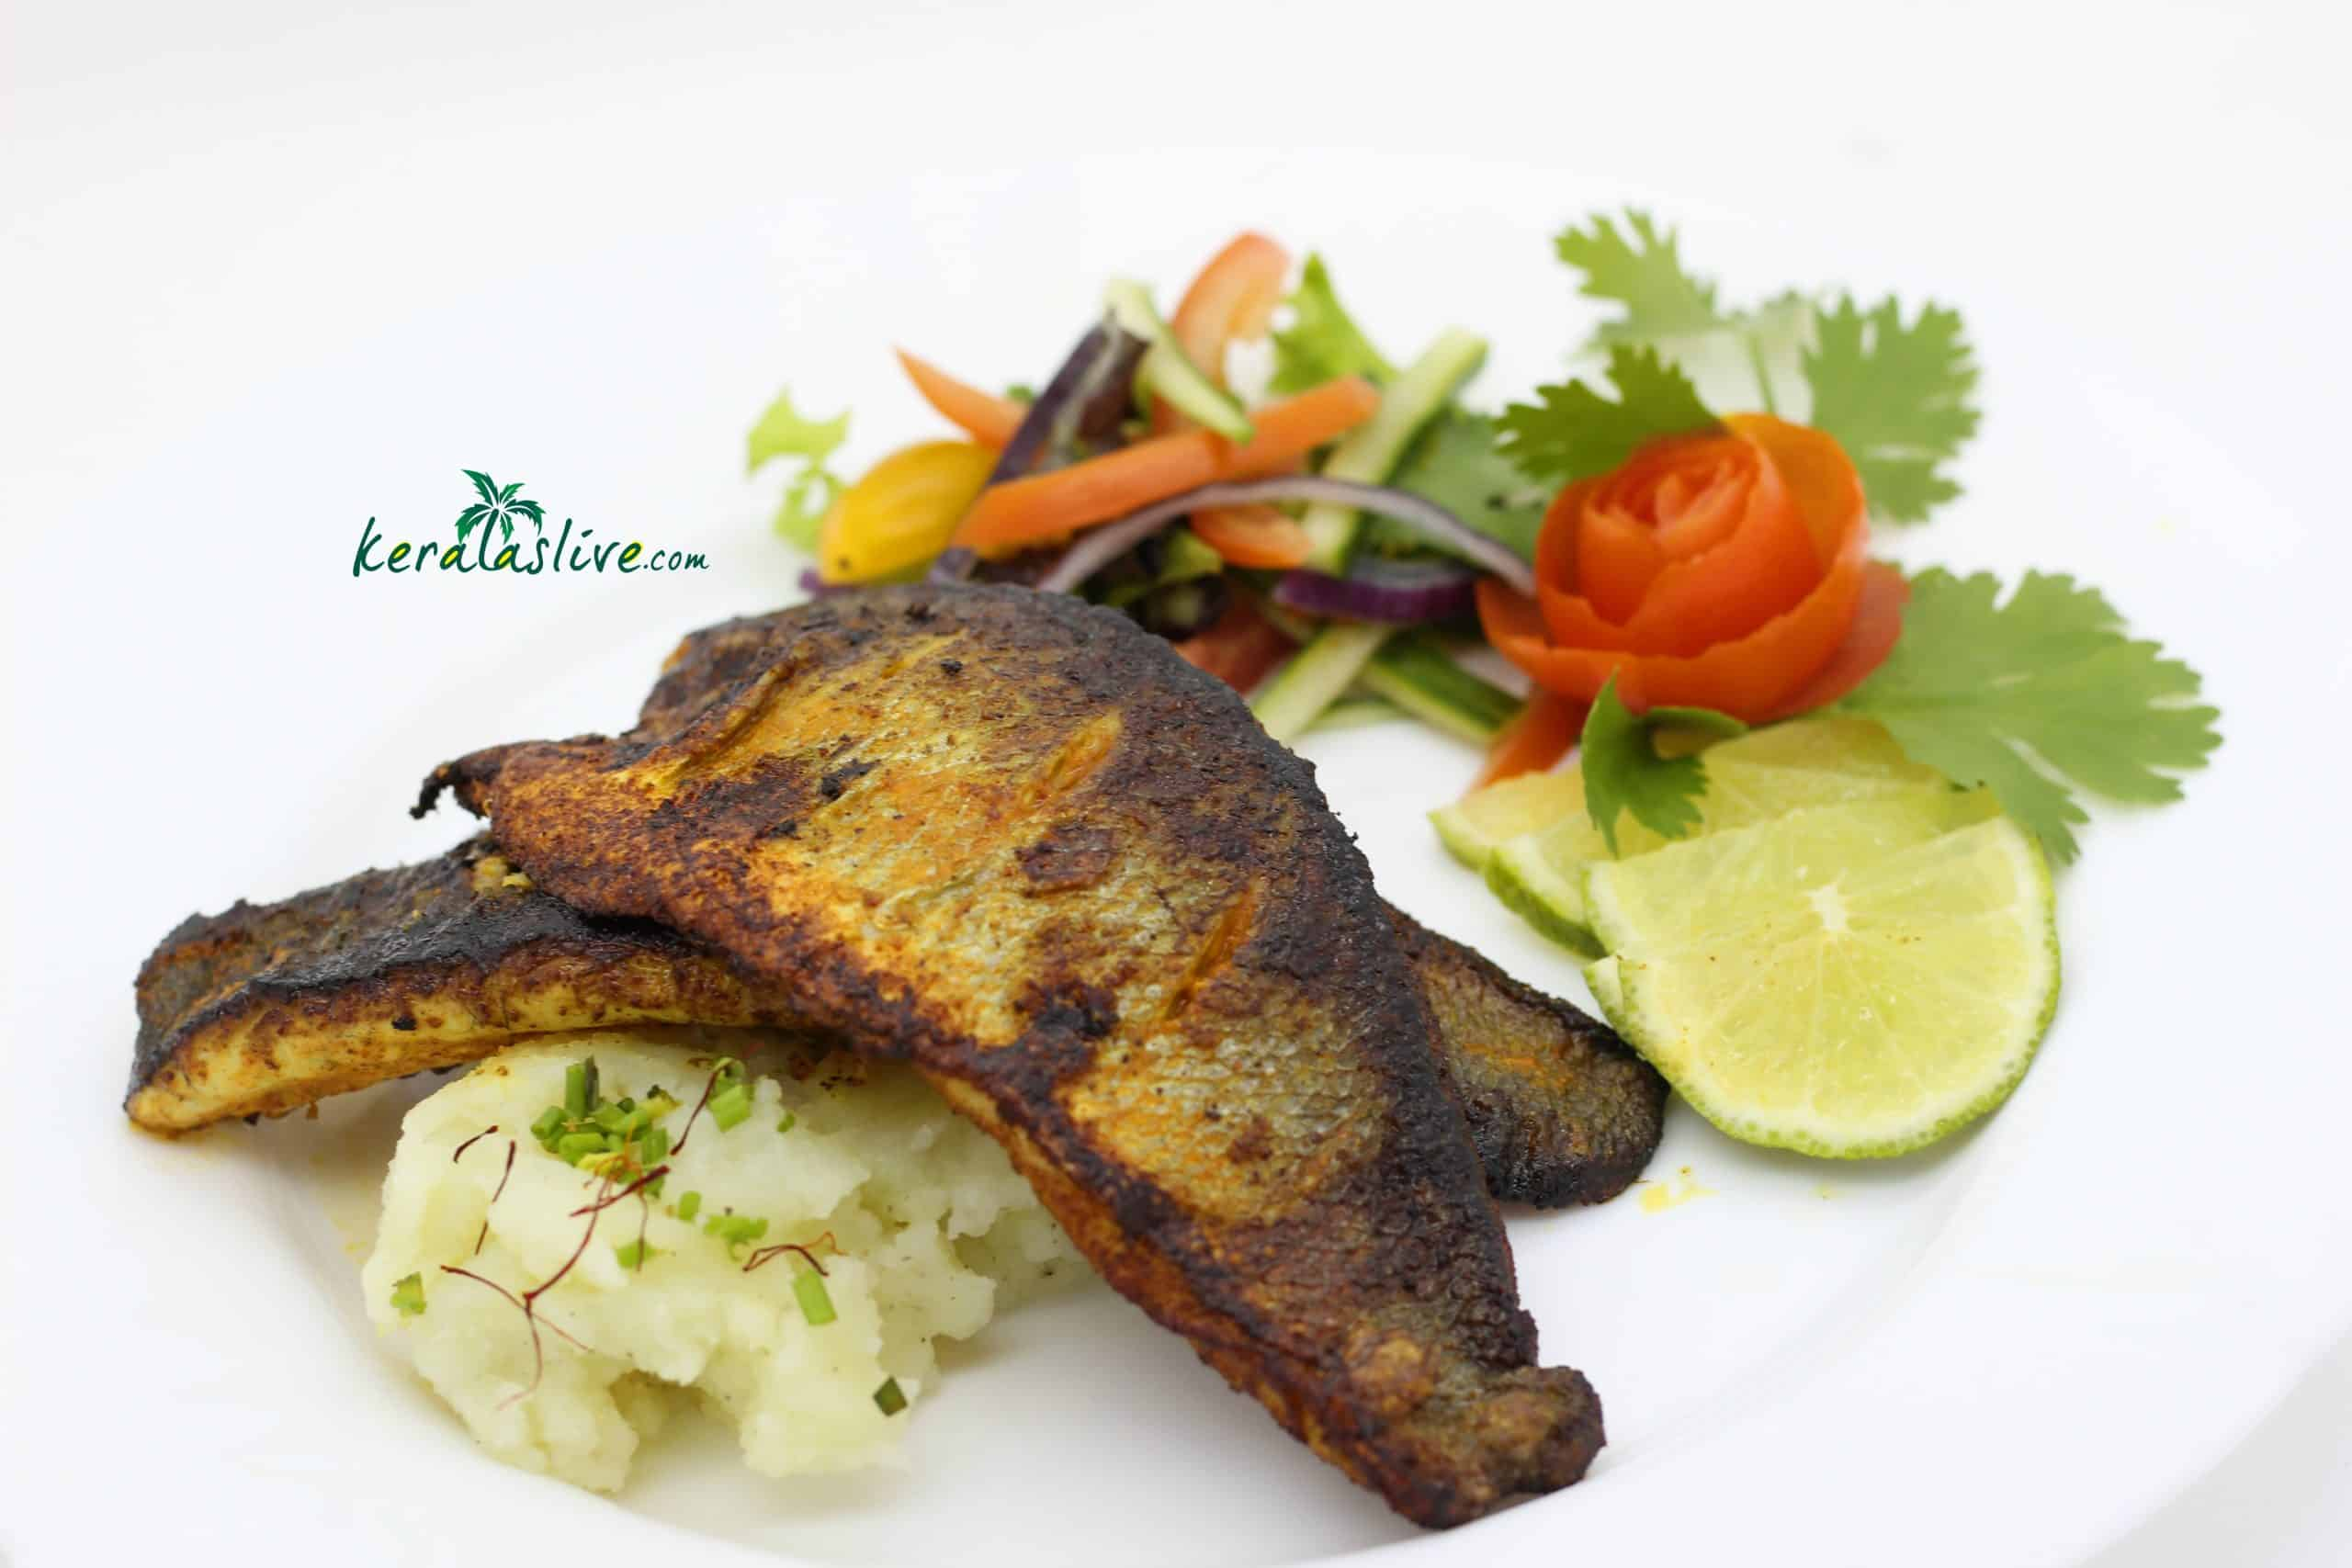 Kerala sea bass fish fry with saffron potatoes